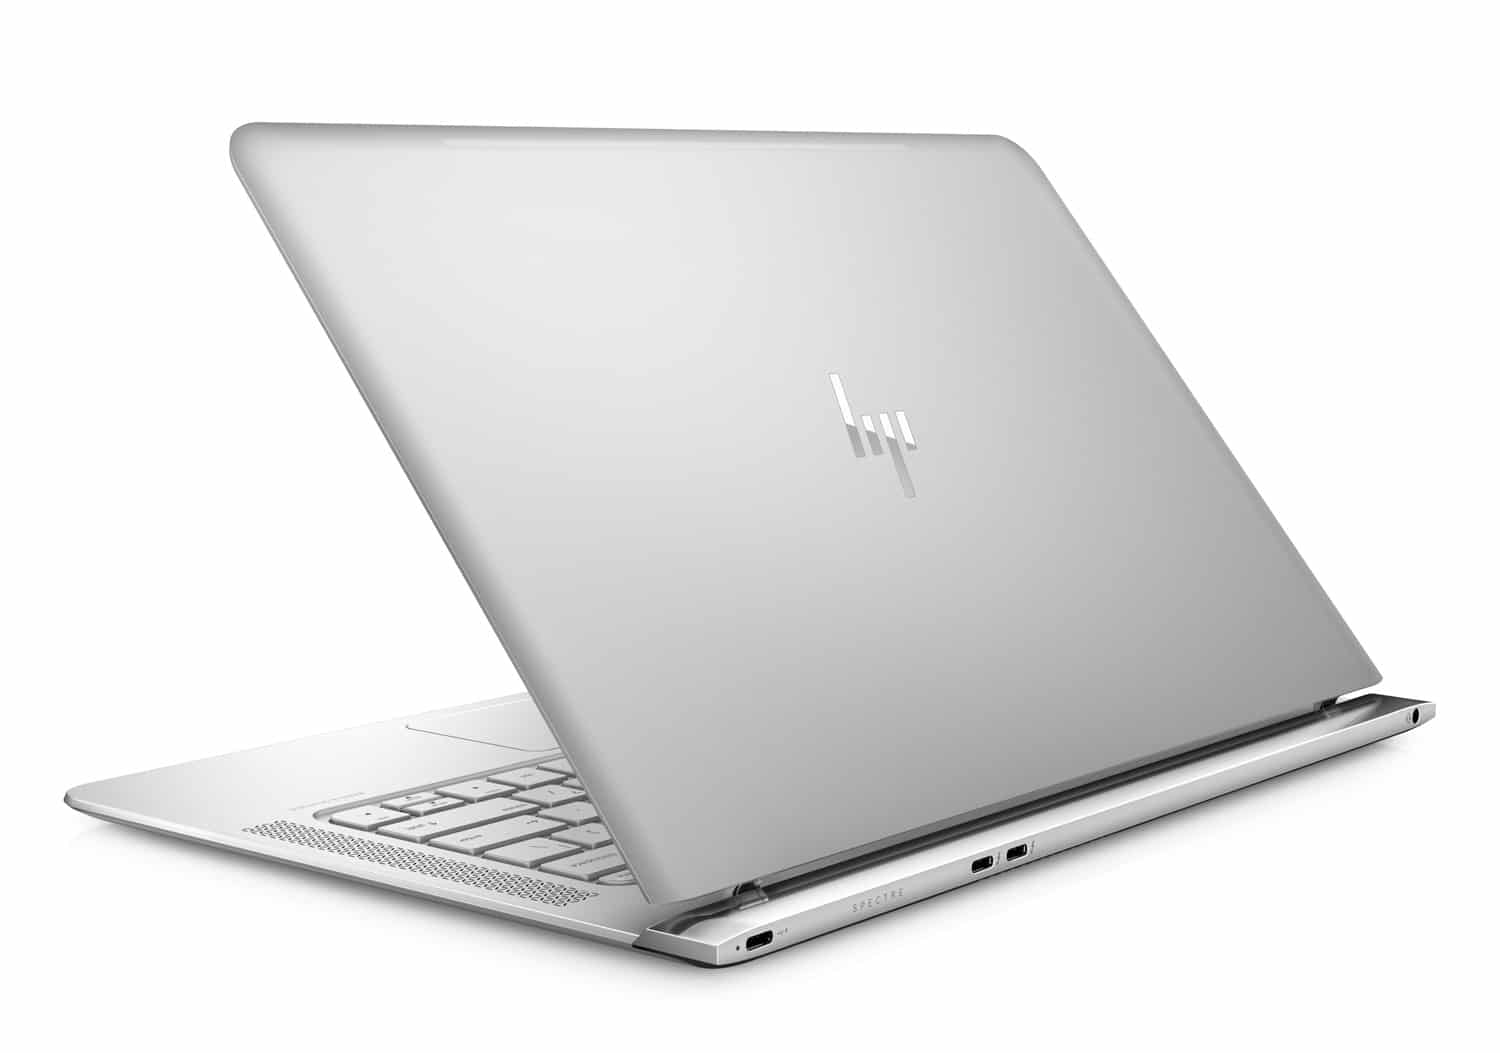 HP Spectre 13-v112nf, Ultrabook IPS 13 pouces SSD 1 To i7 Kaby promo 1599€